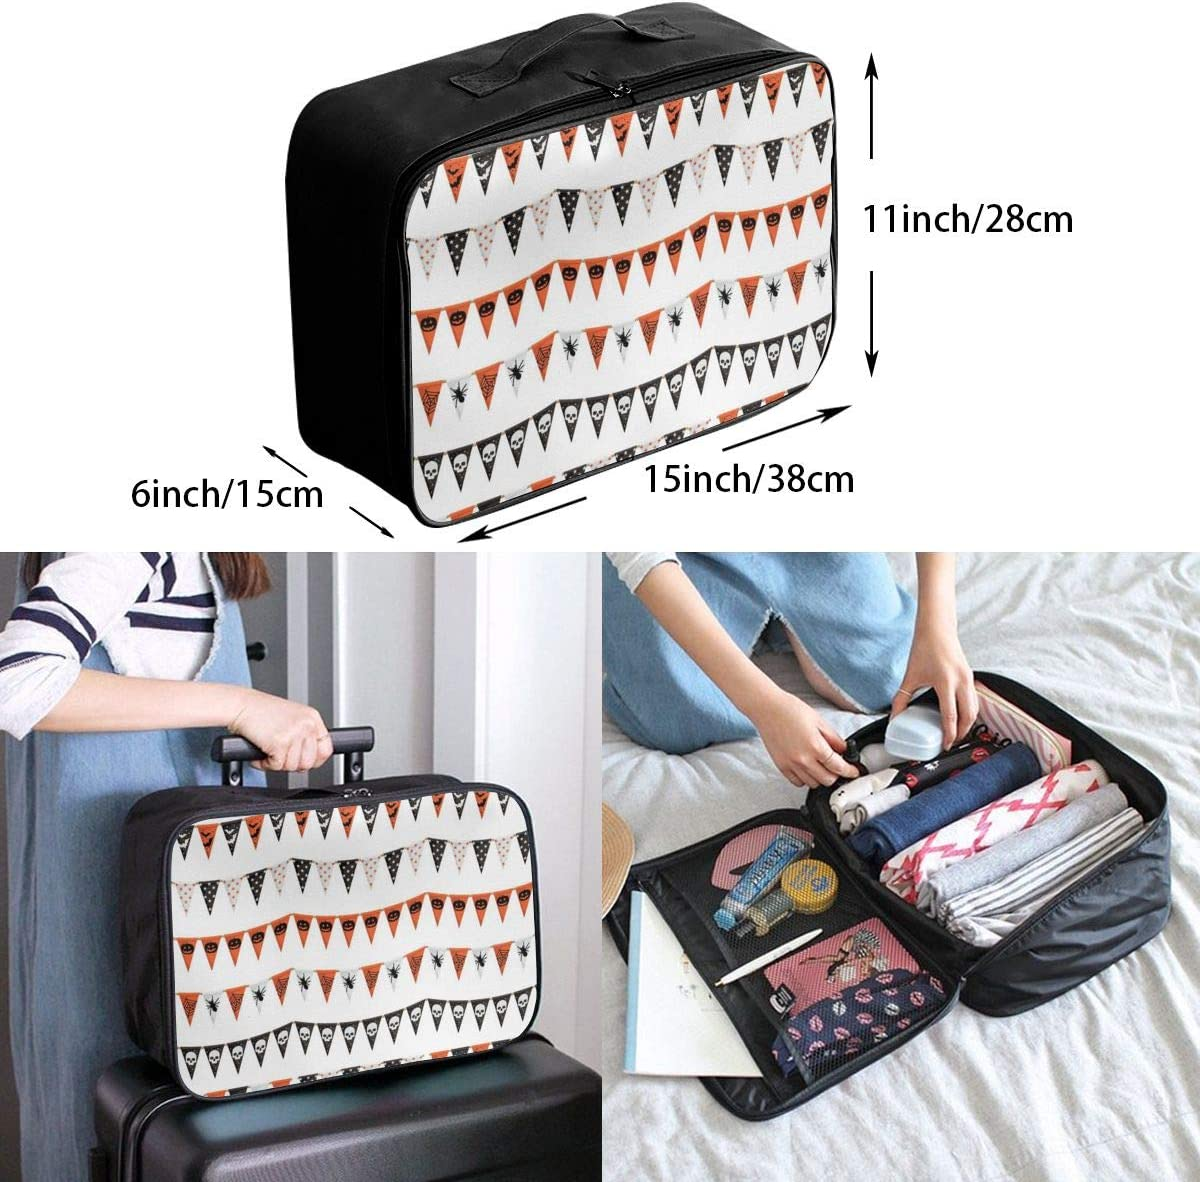 Yunshm Halloween Bunting Vector Image Customized Trolley Handbag Waterproof Unisex Large Capacity For Business Travel Storage